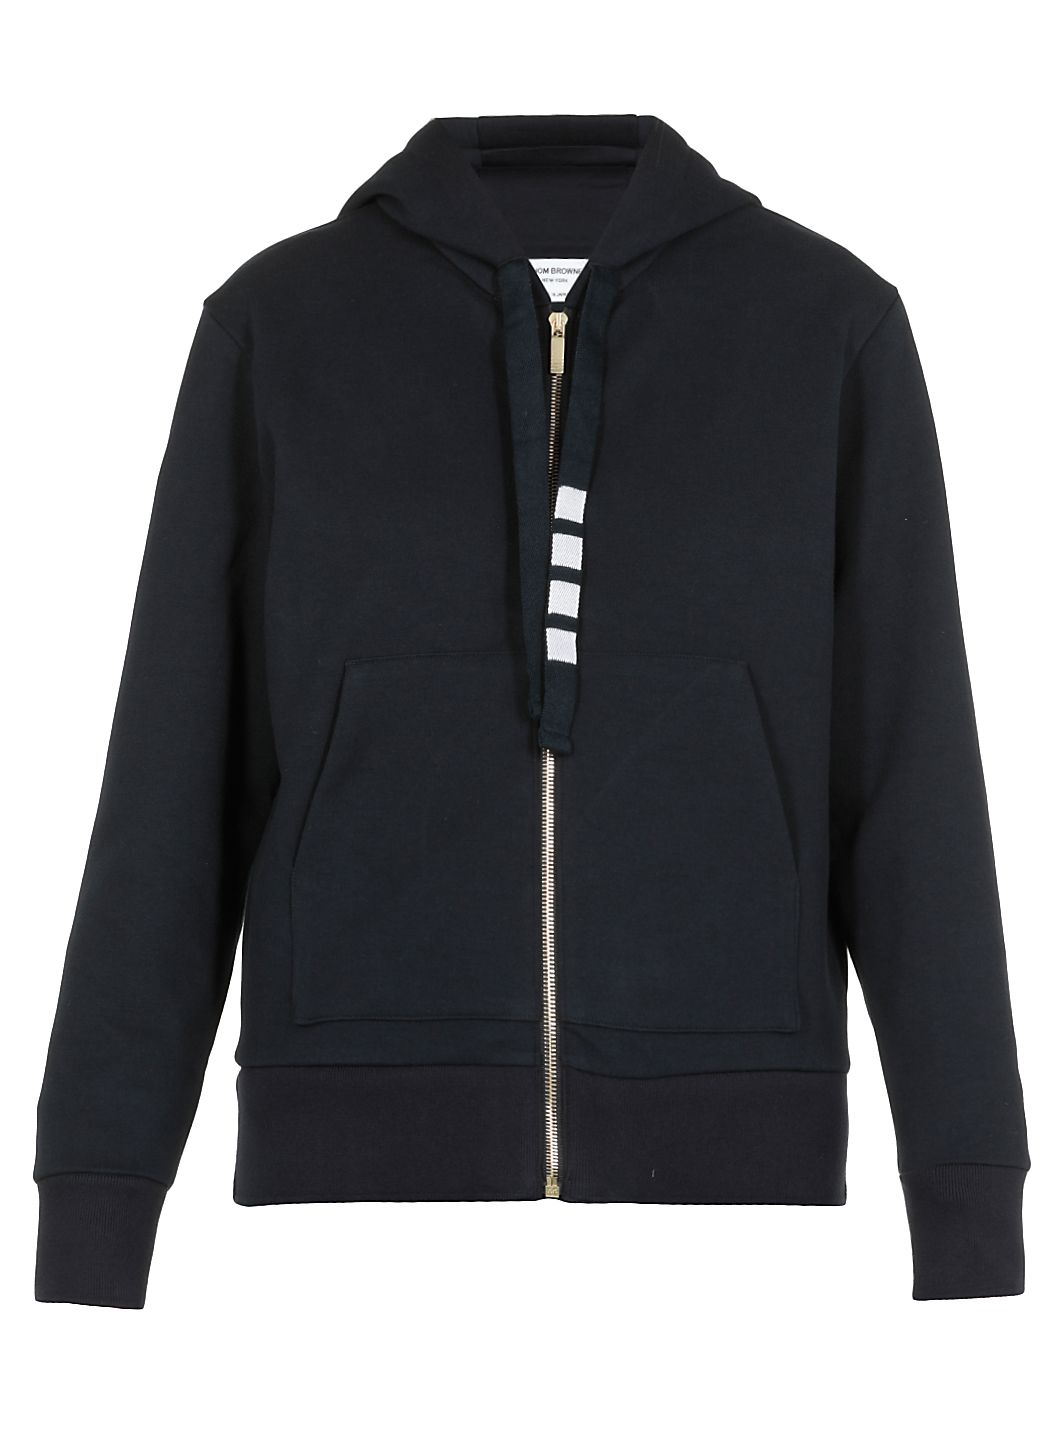 Double knit cotton zip up hoodie